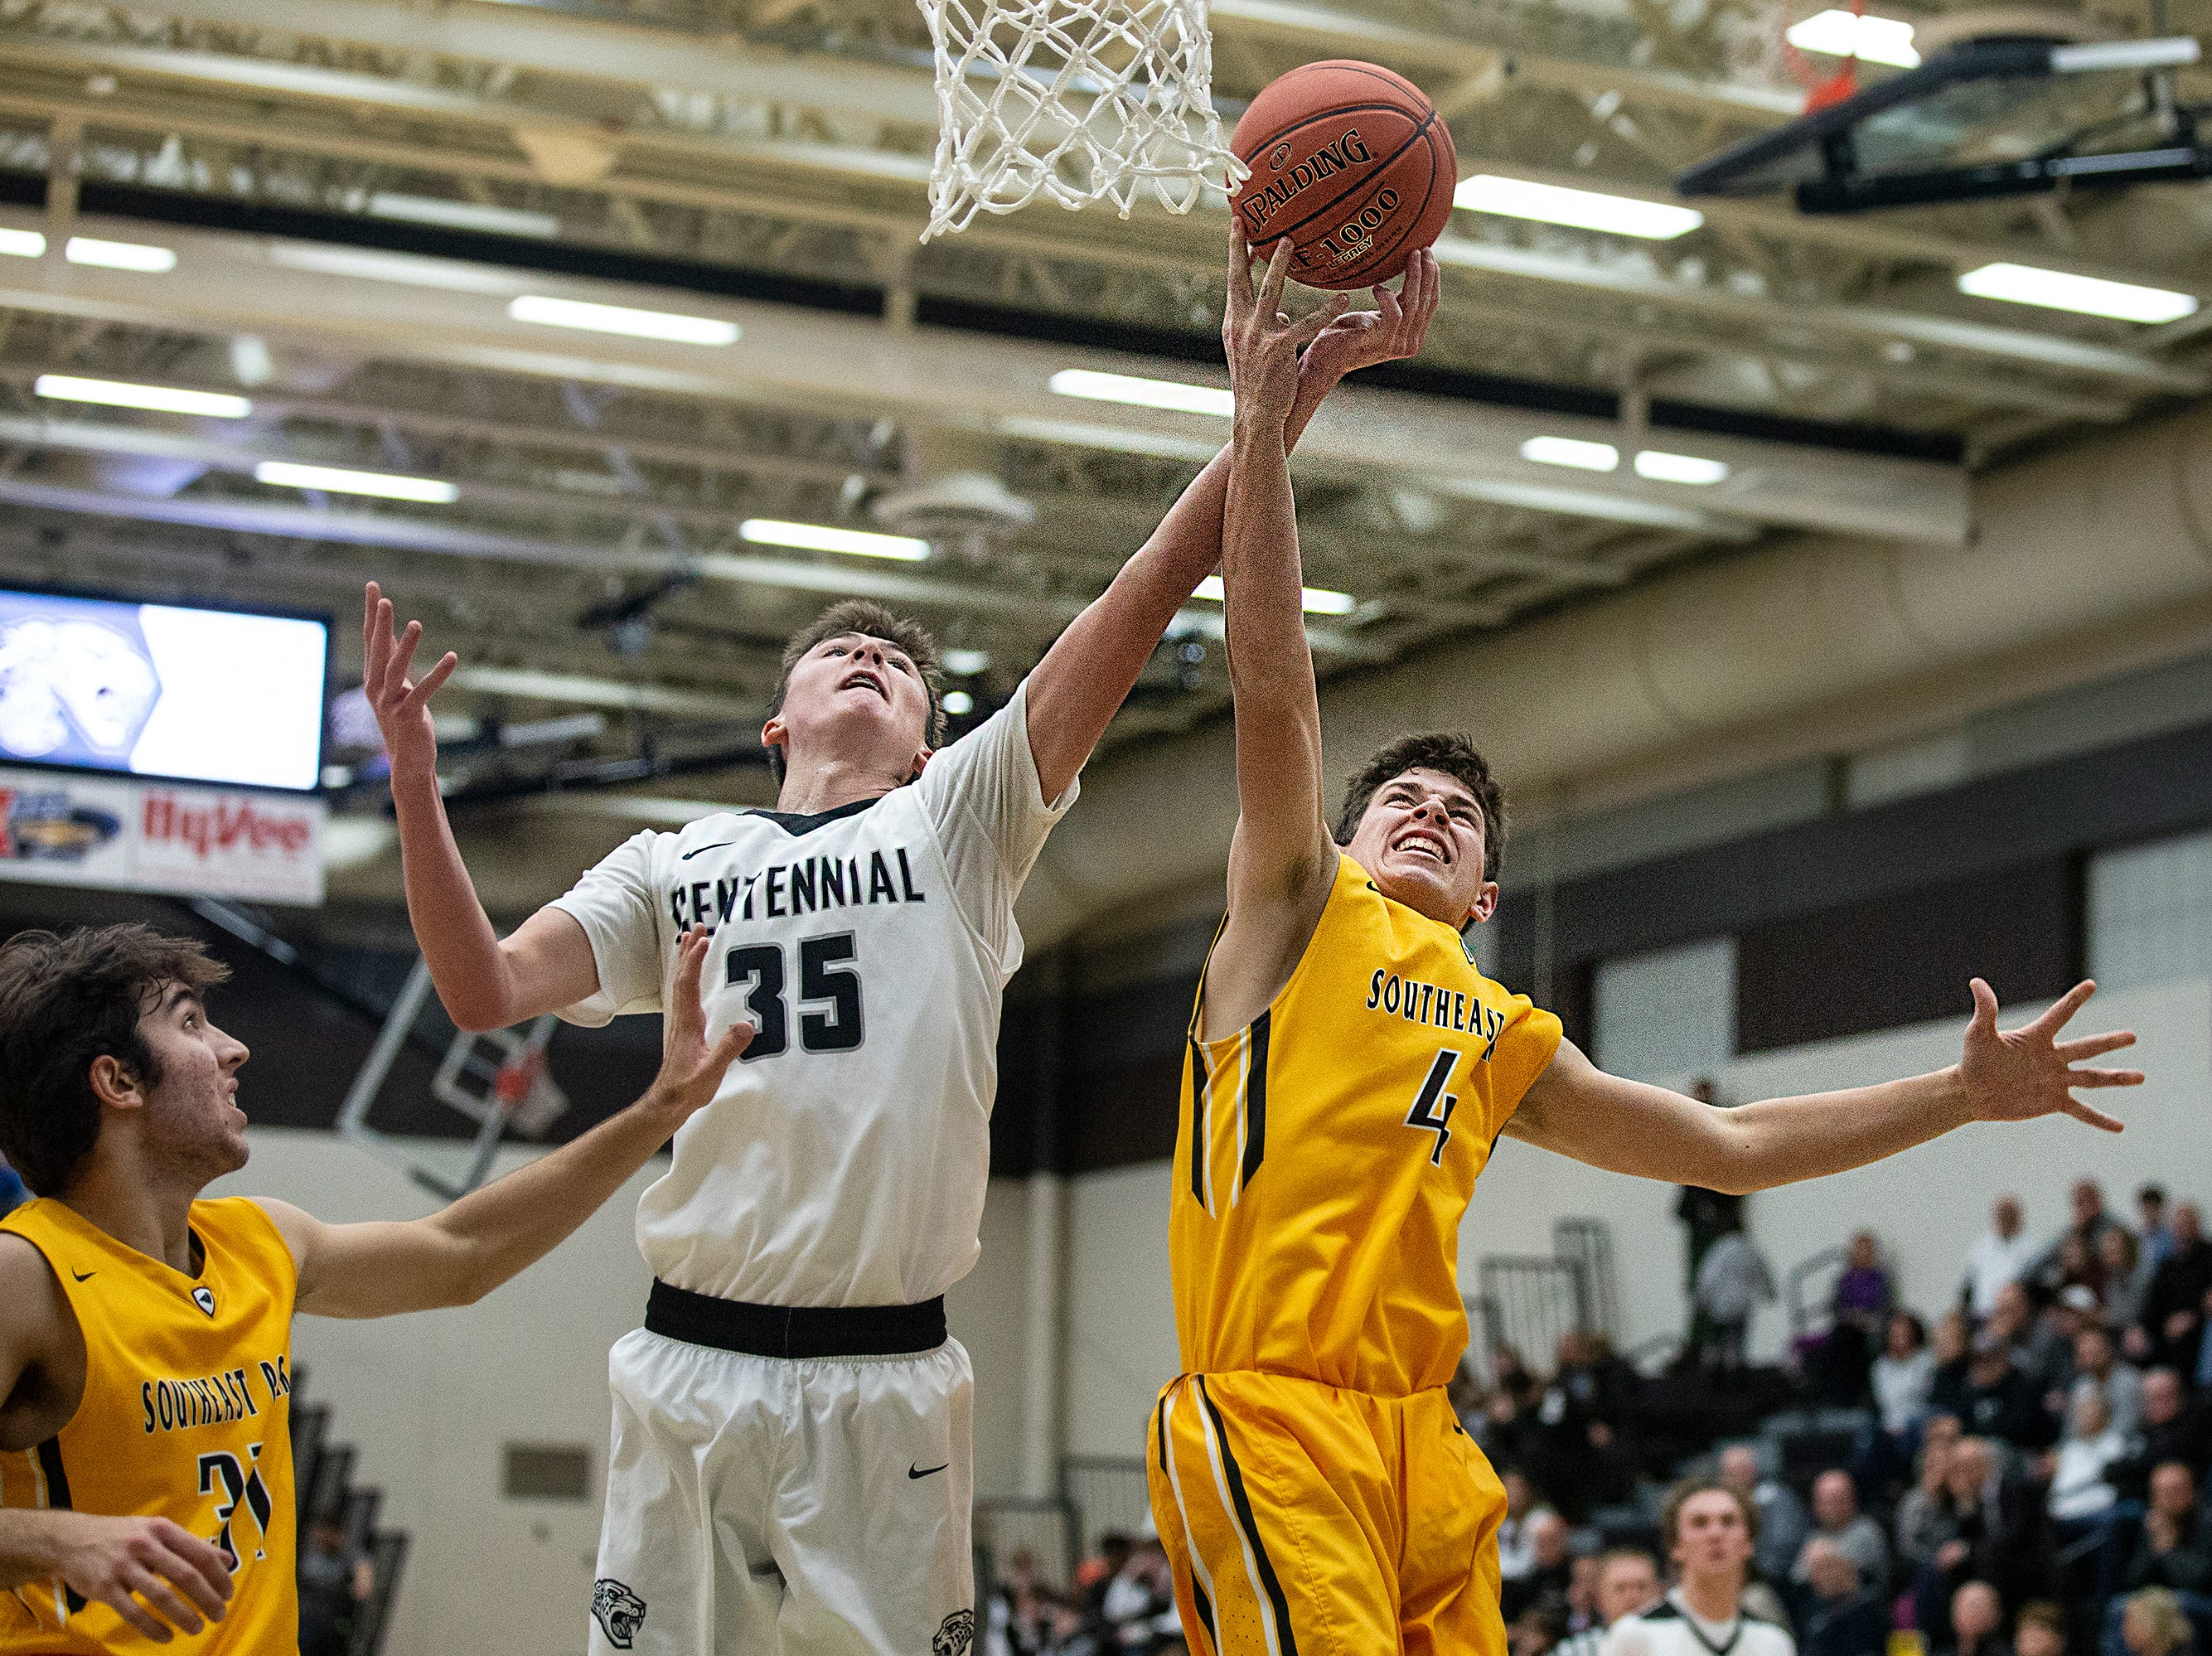 Centennial's Cody McCullough and SEP's Jaxon Dailey reach for a rebound during the Southeast Polk vs. Ankeny Centennial boy's basketball game on Tuesday, Nov. 27, 2018, at Ankeny Centennial High School.